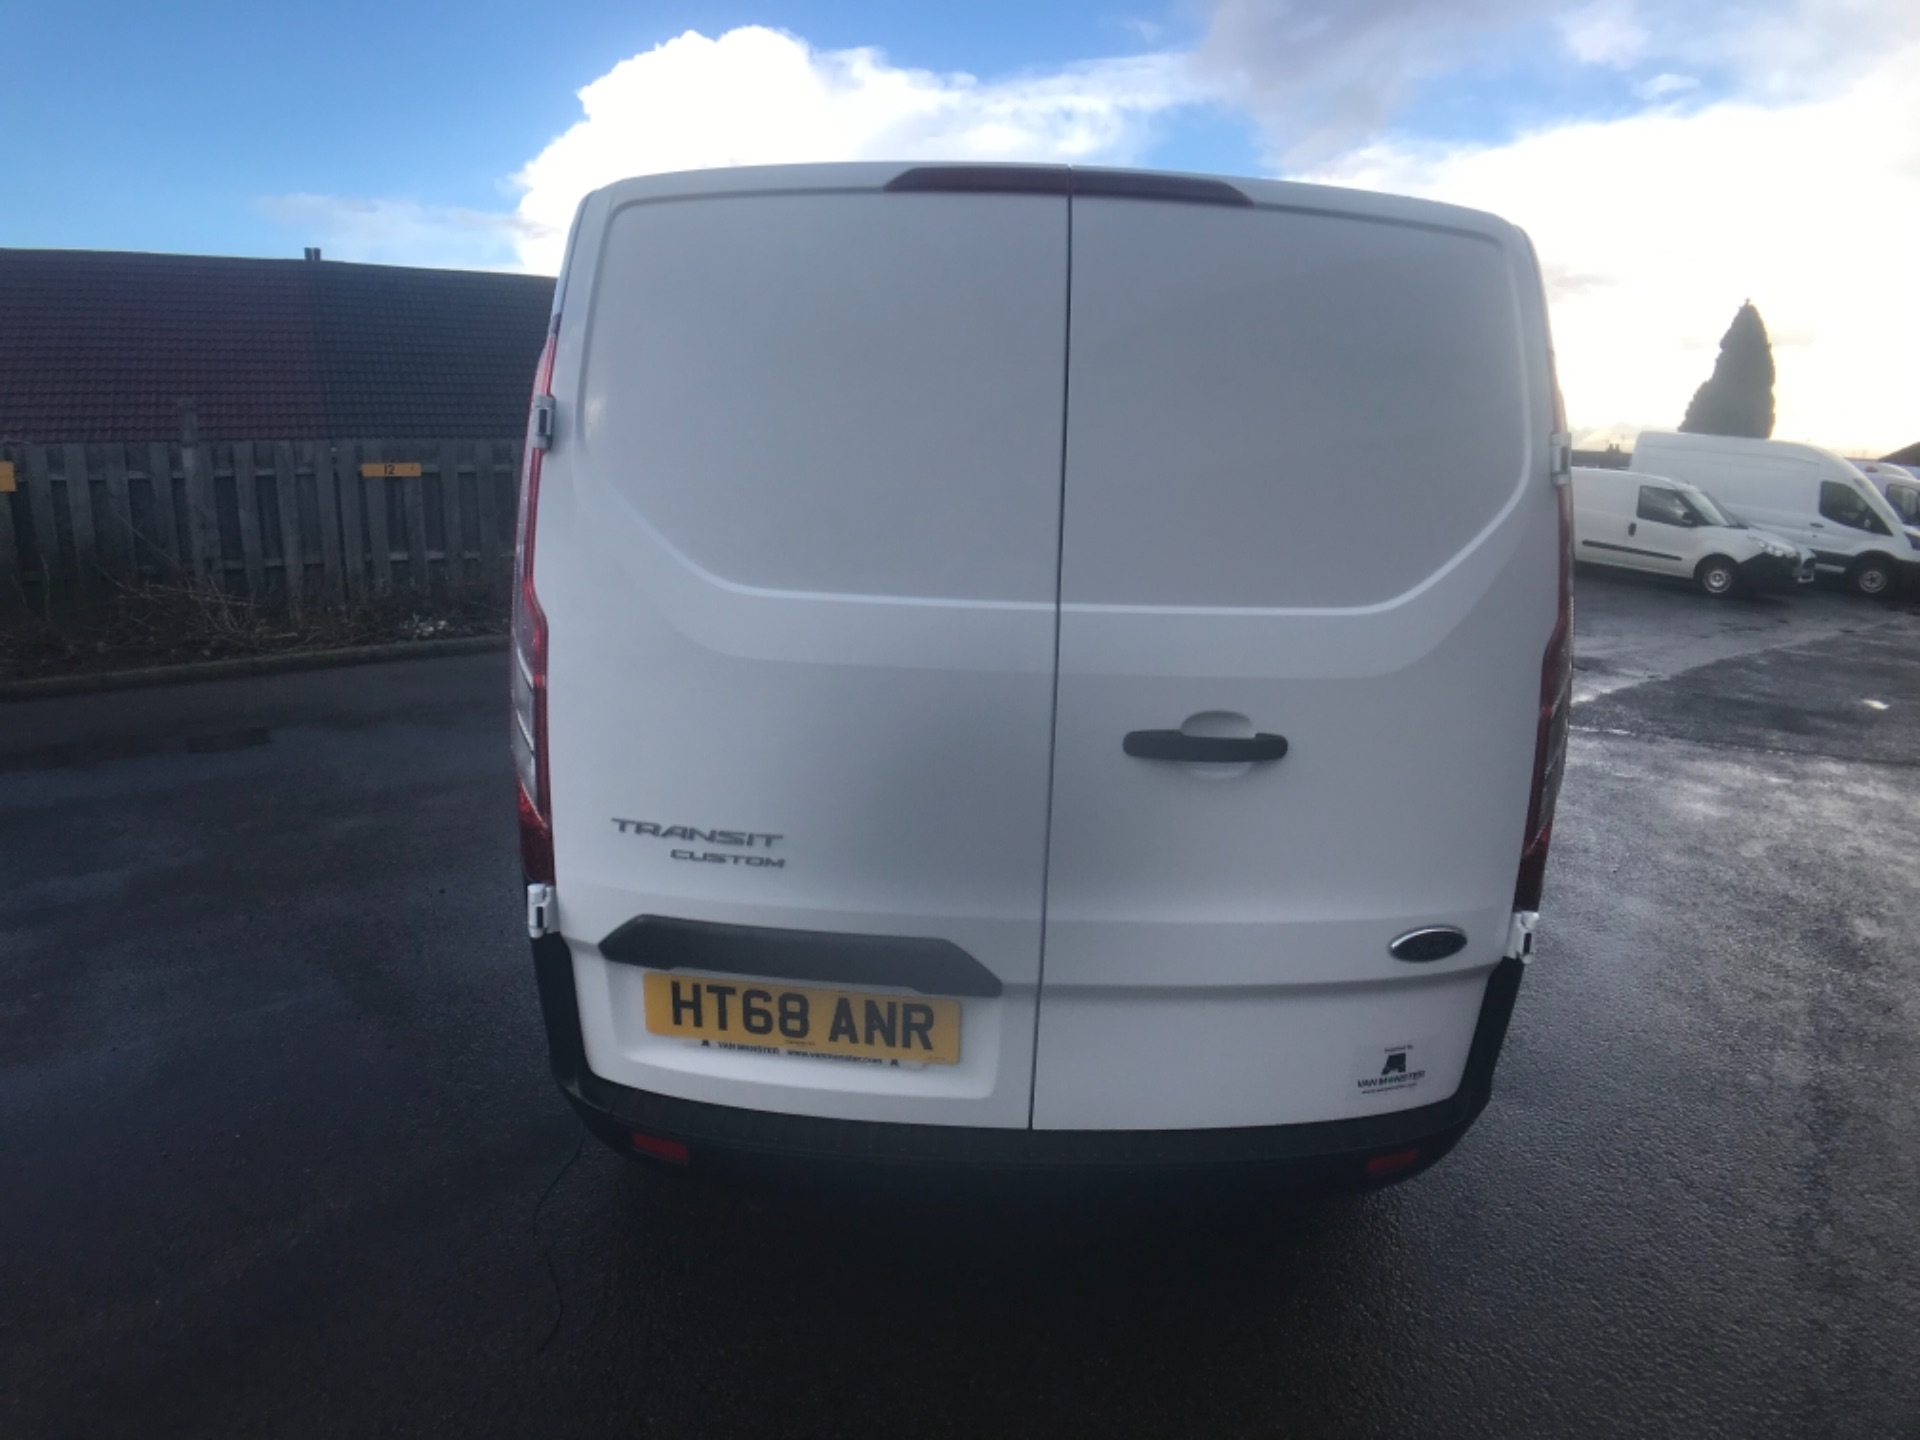 2018 Ford Transit Custom 300 2.0 Tdci 105Ps Low Roof D/Cab Van EURO 6 (HT68ANR) Image 6